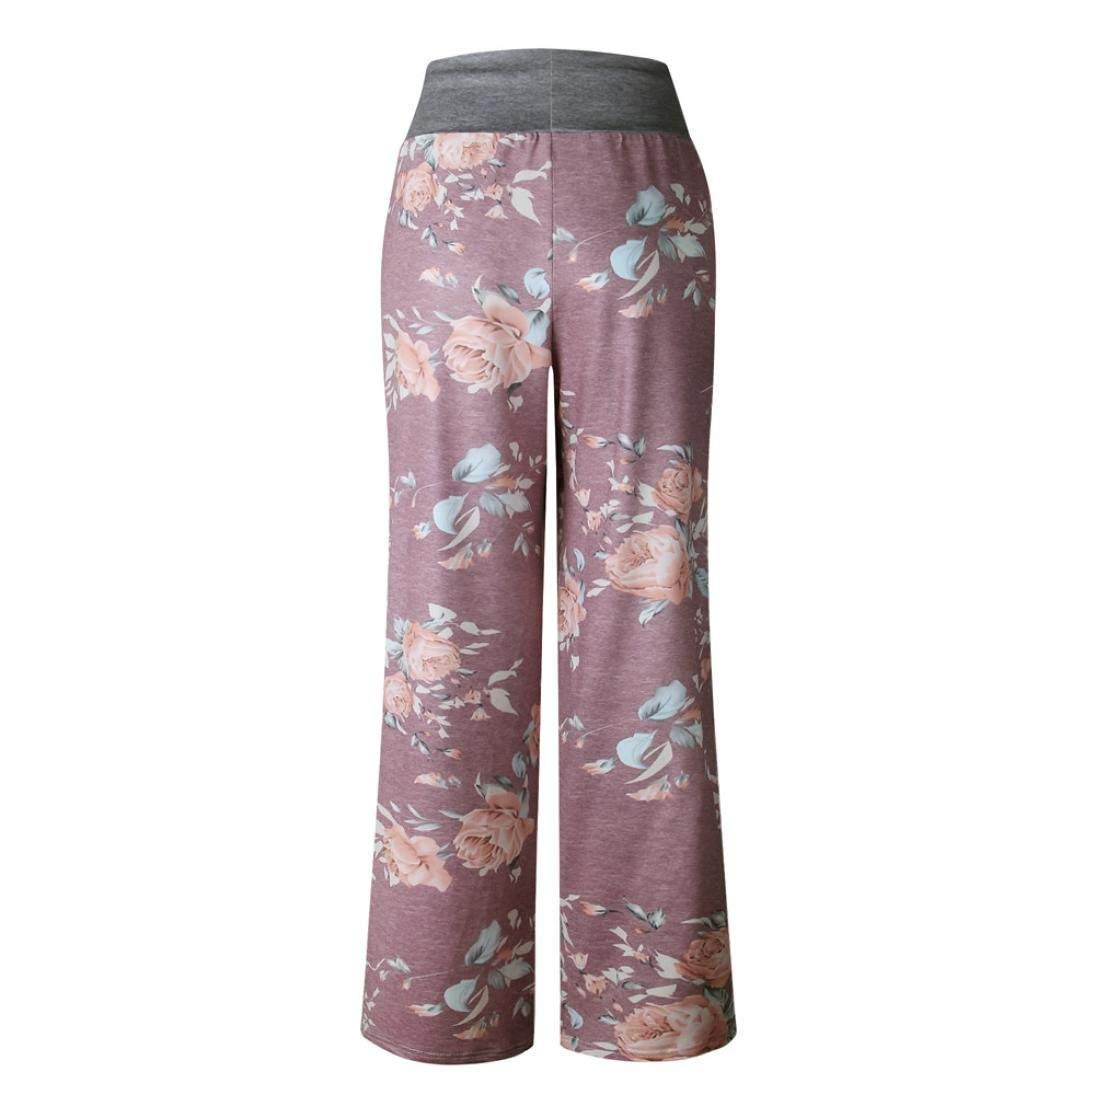 3e7f18fb69 GouuoHi Womens Pants Large Size Women Casual Summer Floral Print Loose Yoga  Wide Leg Pants Running Gym Stretch Fashion Leisure Cosy Super Quality for  Womens